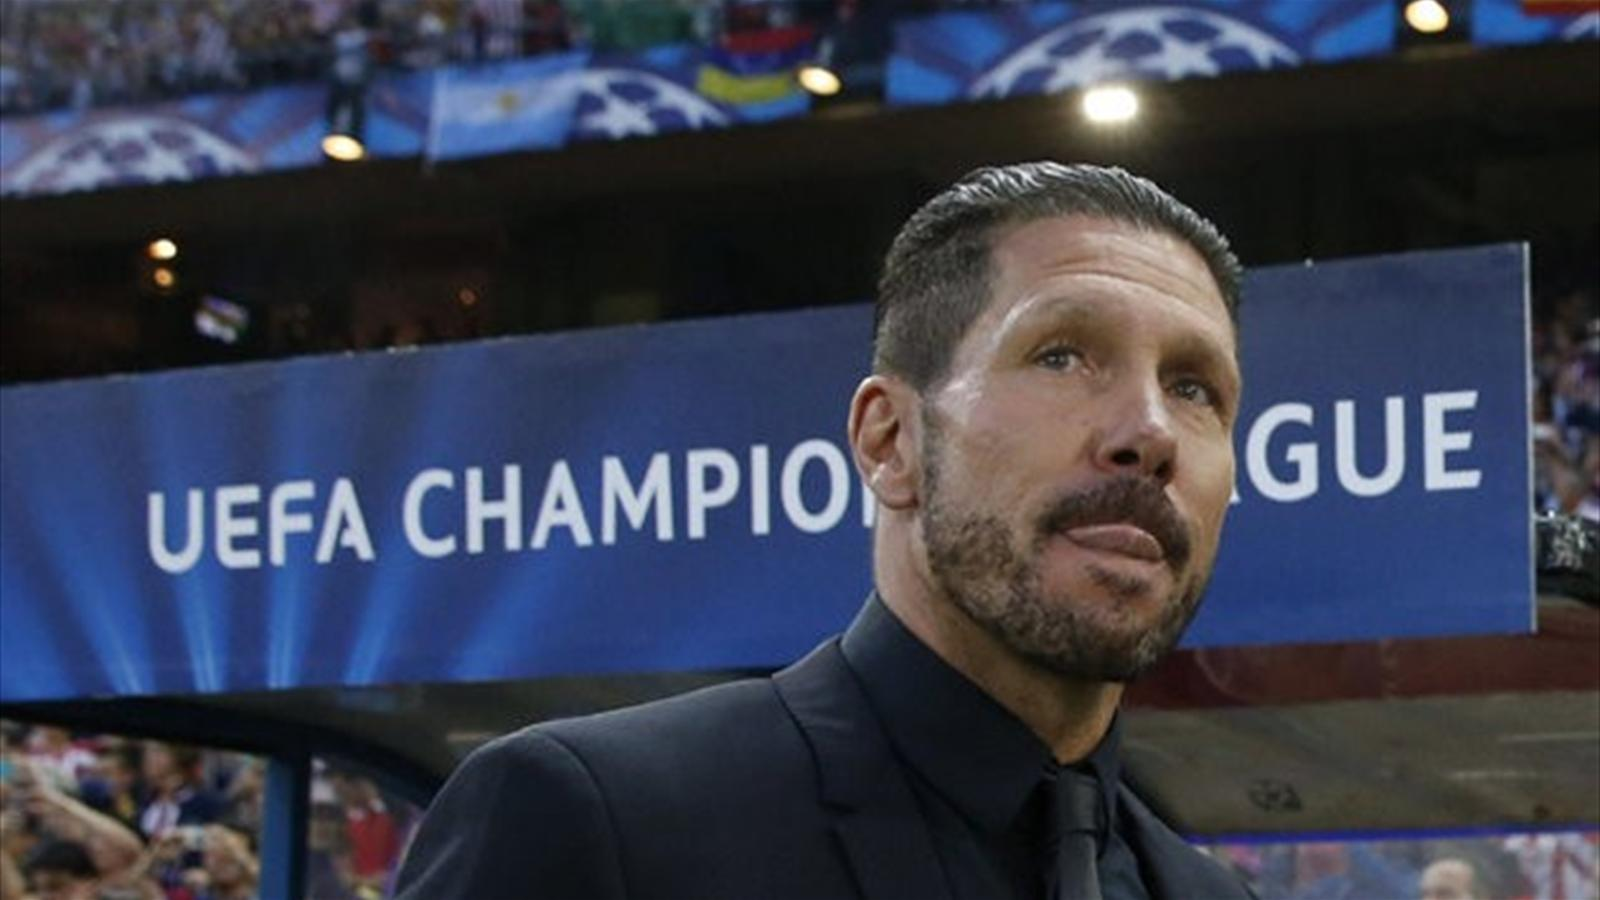 2013-14 Champions League, Atletico Madrid, Diego Simeone (Ap/LaPresse)